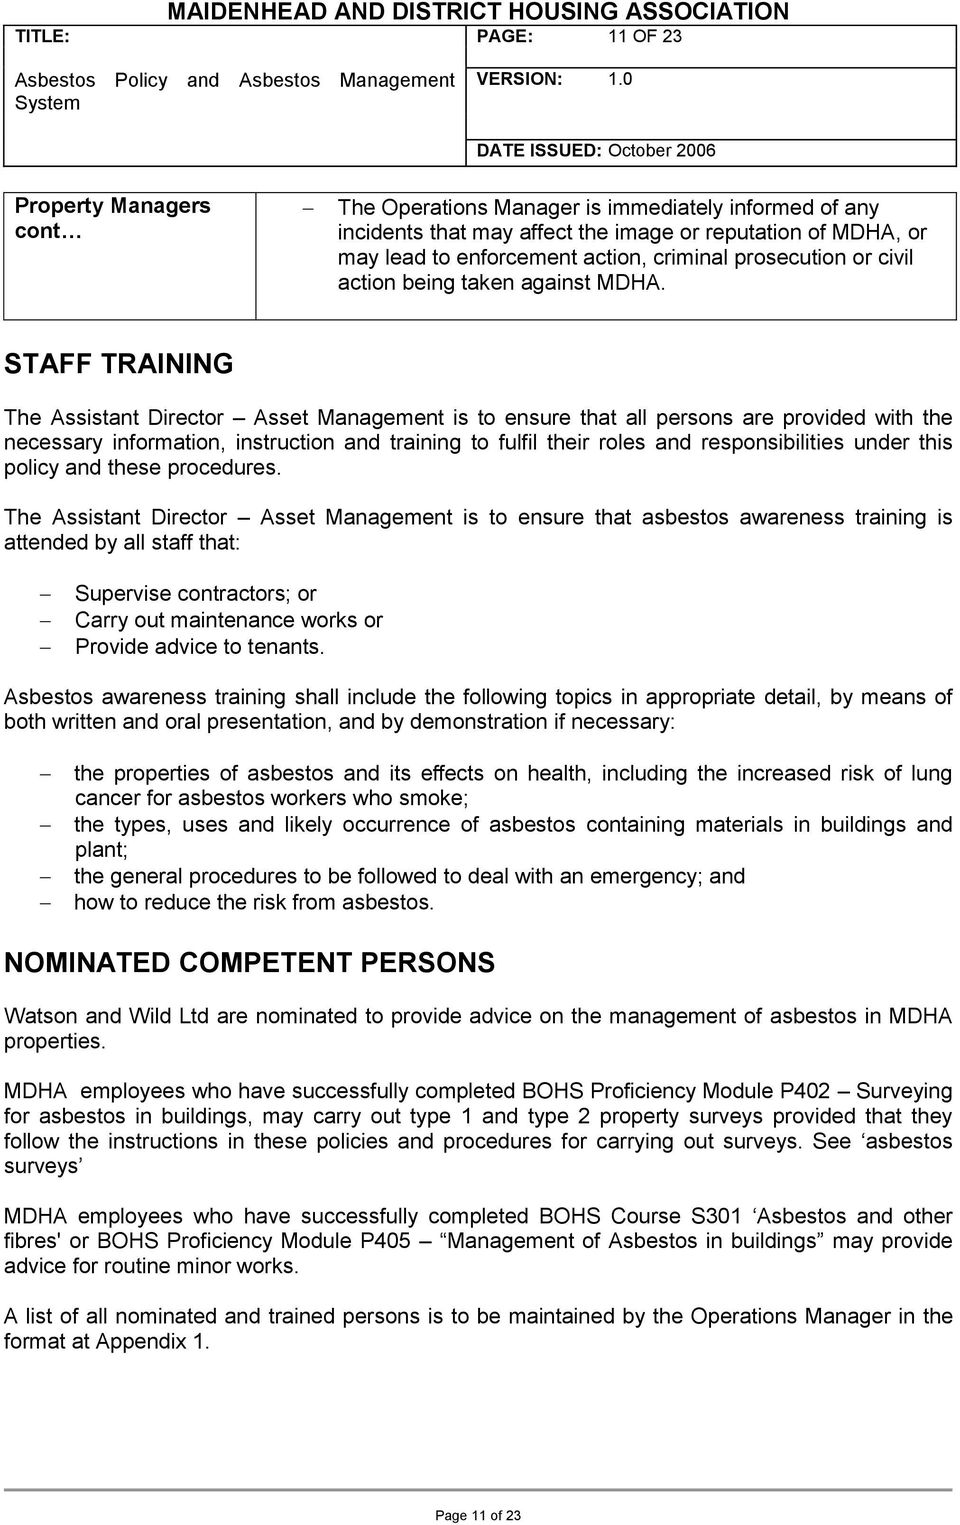 STAFF TRAINING The Assistant Director Asset Management is to ensure that all persons are provided with the necessary information, instruction and training to fulfil their roles and responsibilities